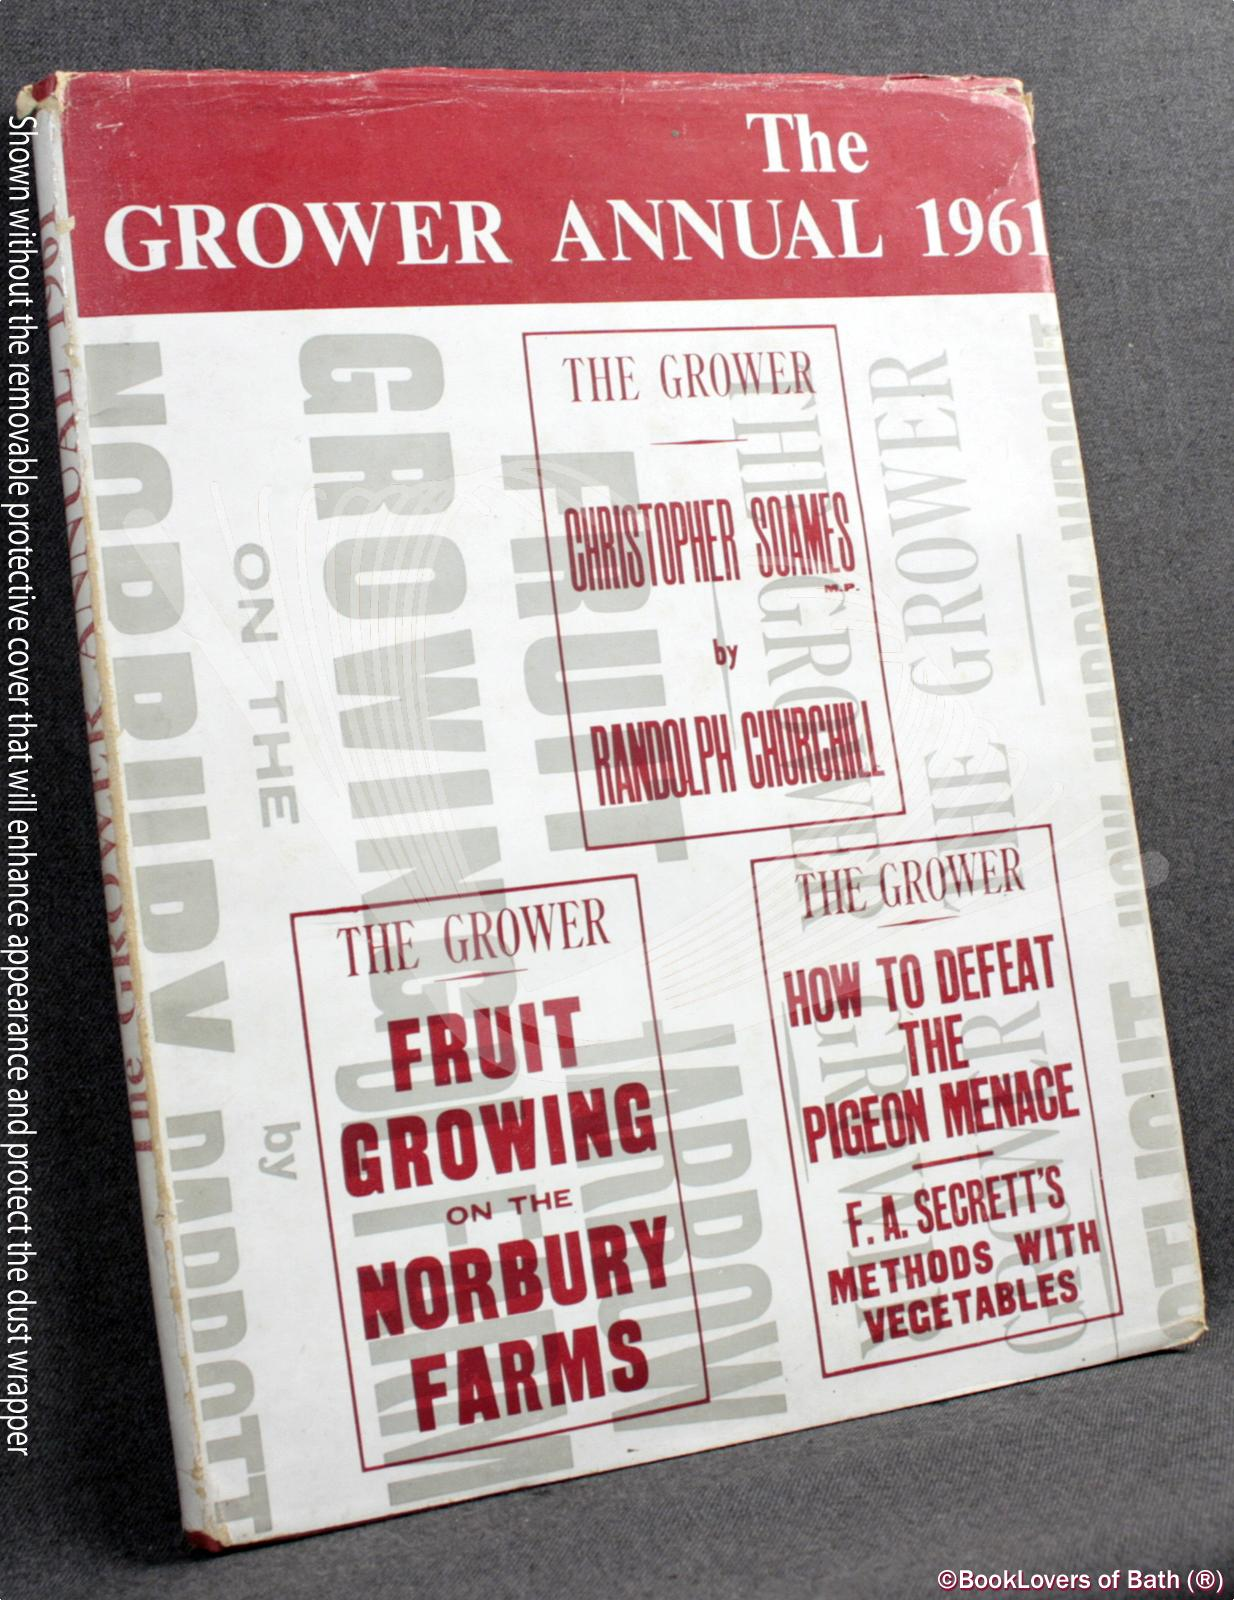 The Grower Annual 1961 - Anon.